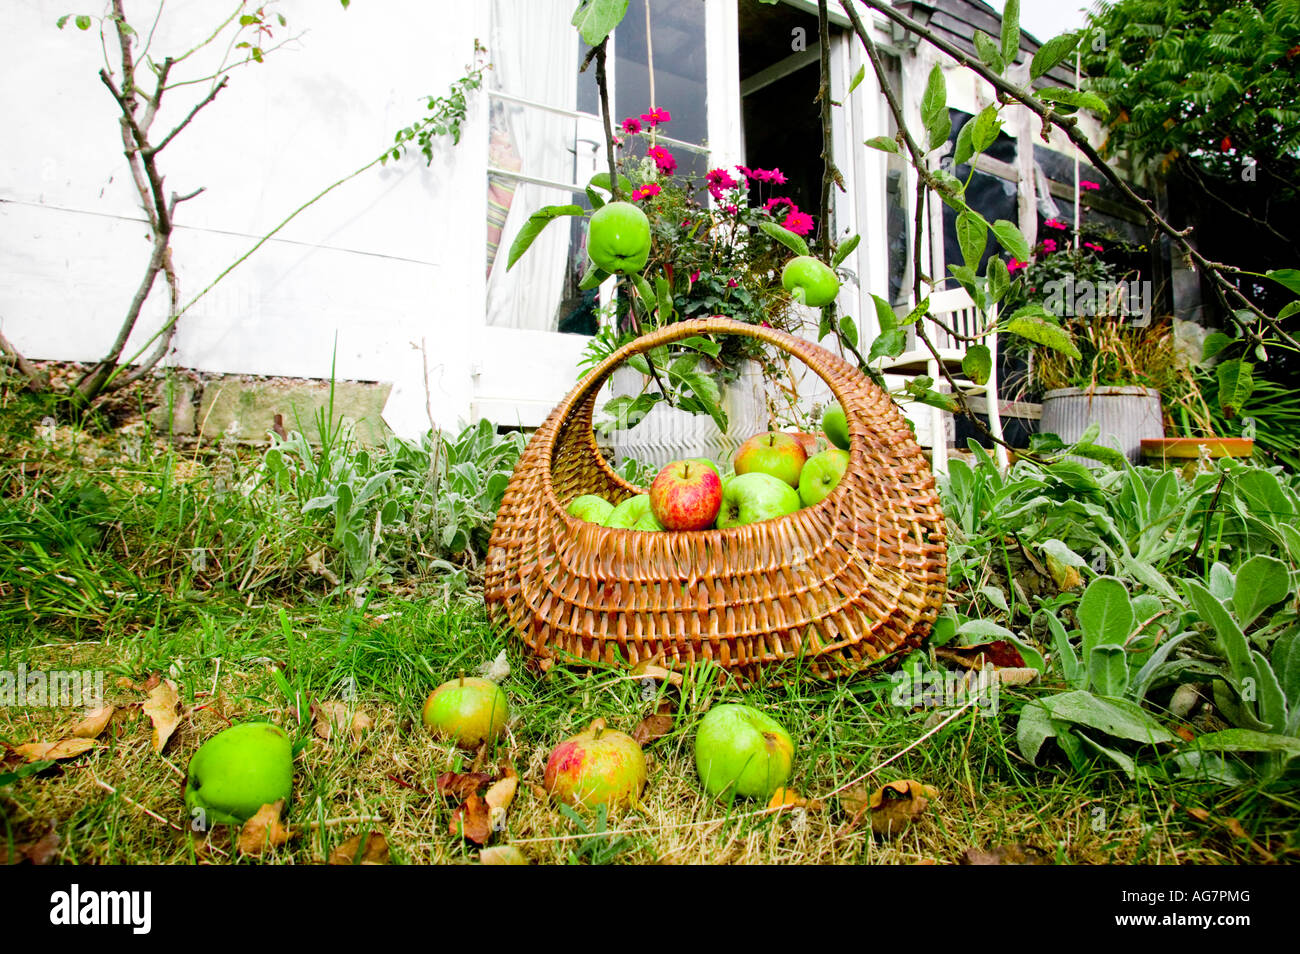 Basket of apples in an orchard in Sussex, England, UK Stock Photo